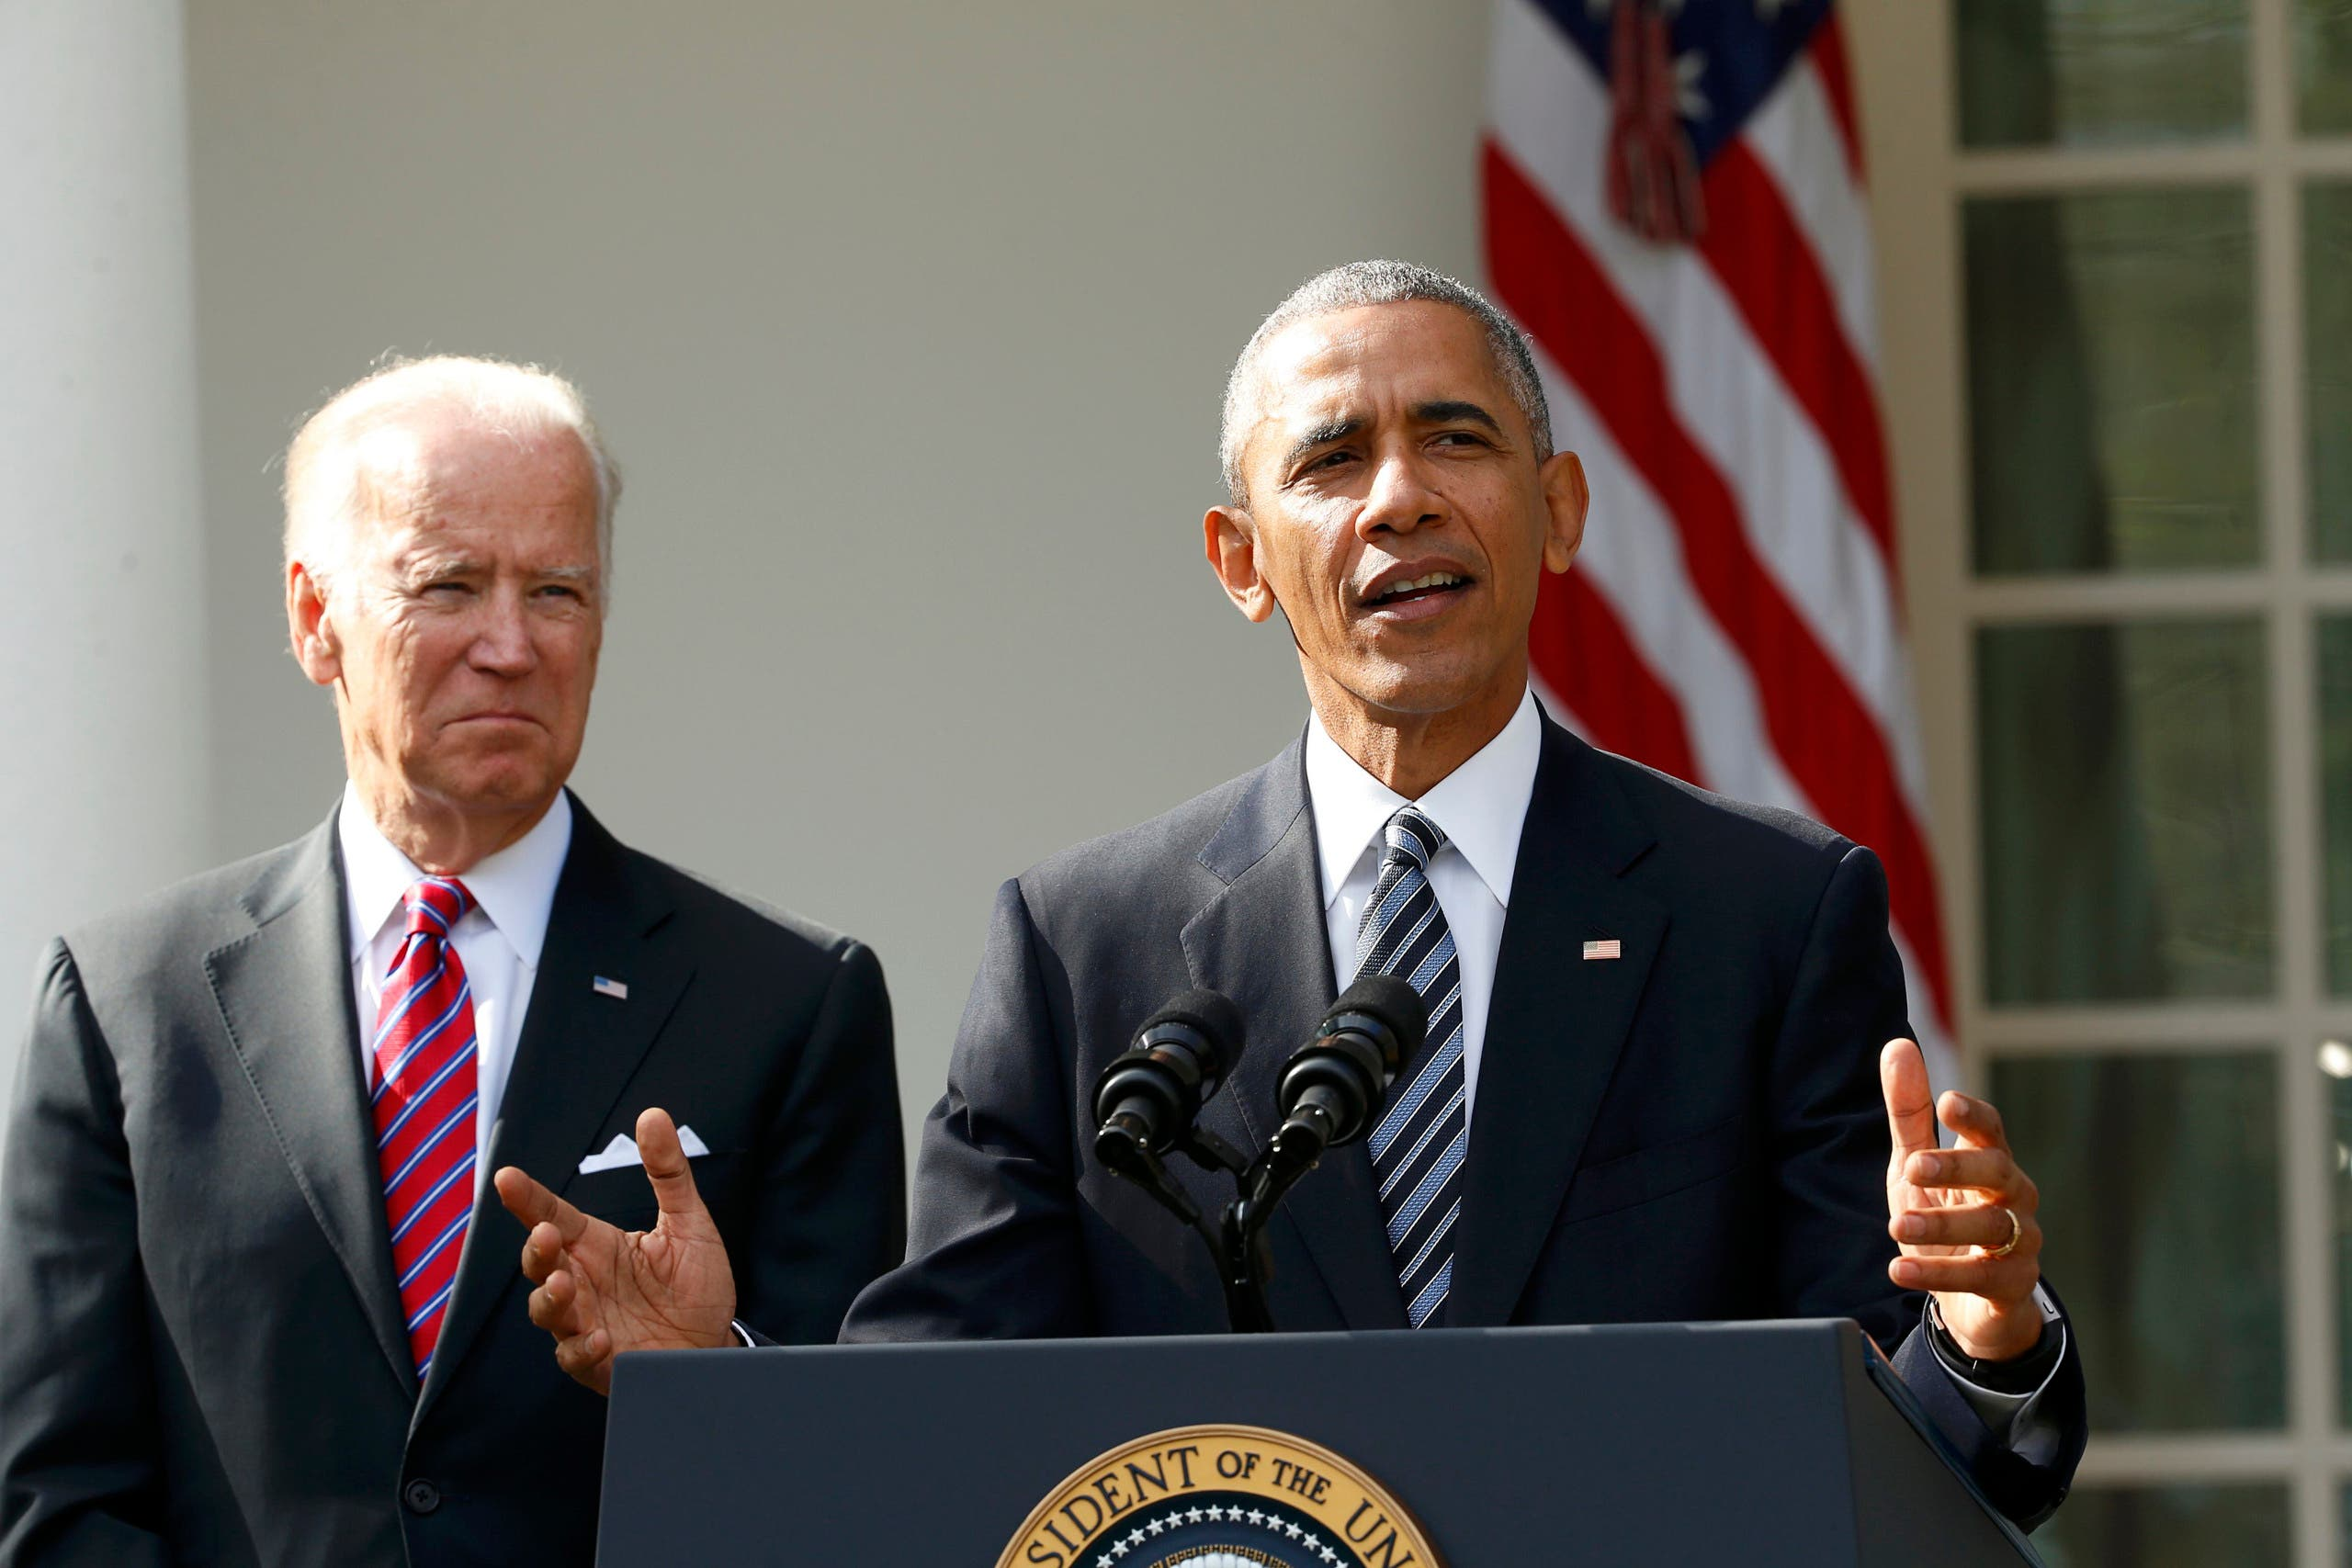 President Barack Obama, with VP Joe Biden at his side (L), delivers a statement from the White House, Nov. 9, 2016. (Reuters)